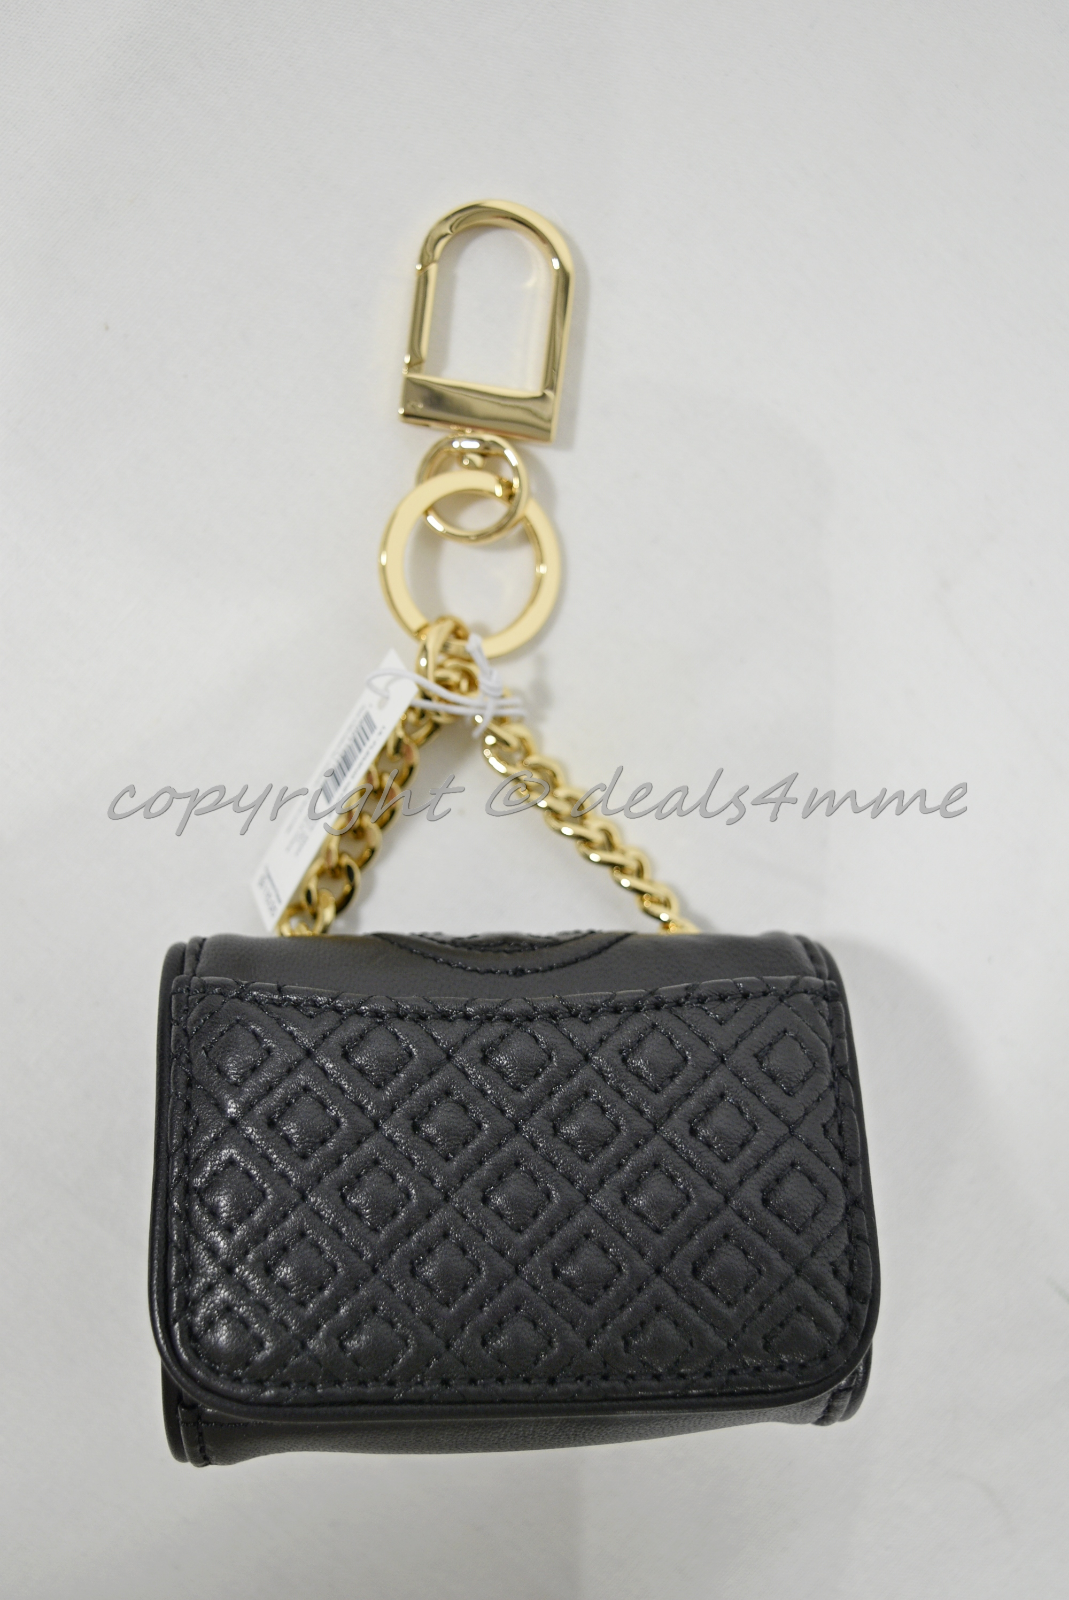 Tory Burch Leather Fleming Metallic Mini Key Fob / Bag Charm in Spark Gold/Black image 14